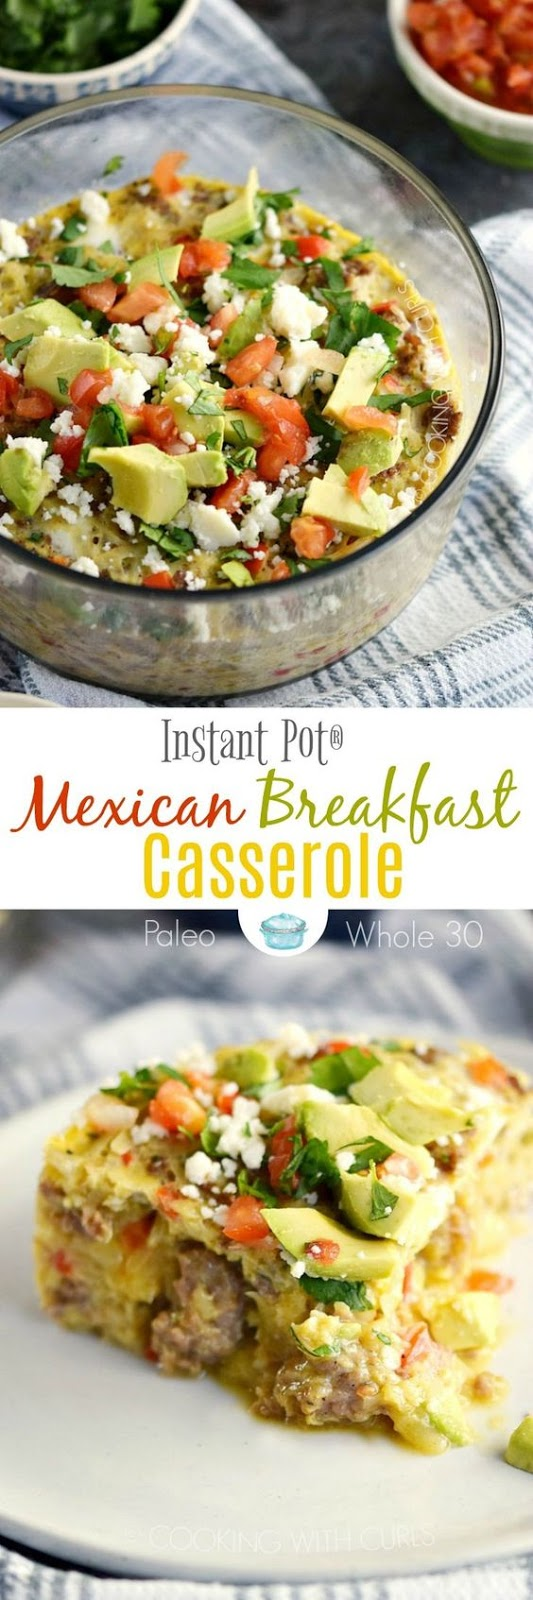 Instant Pot Mexican Breakfast Casserole